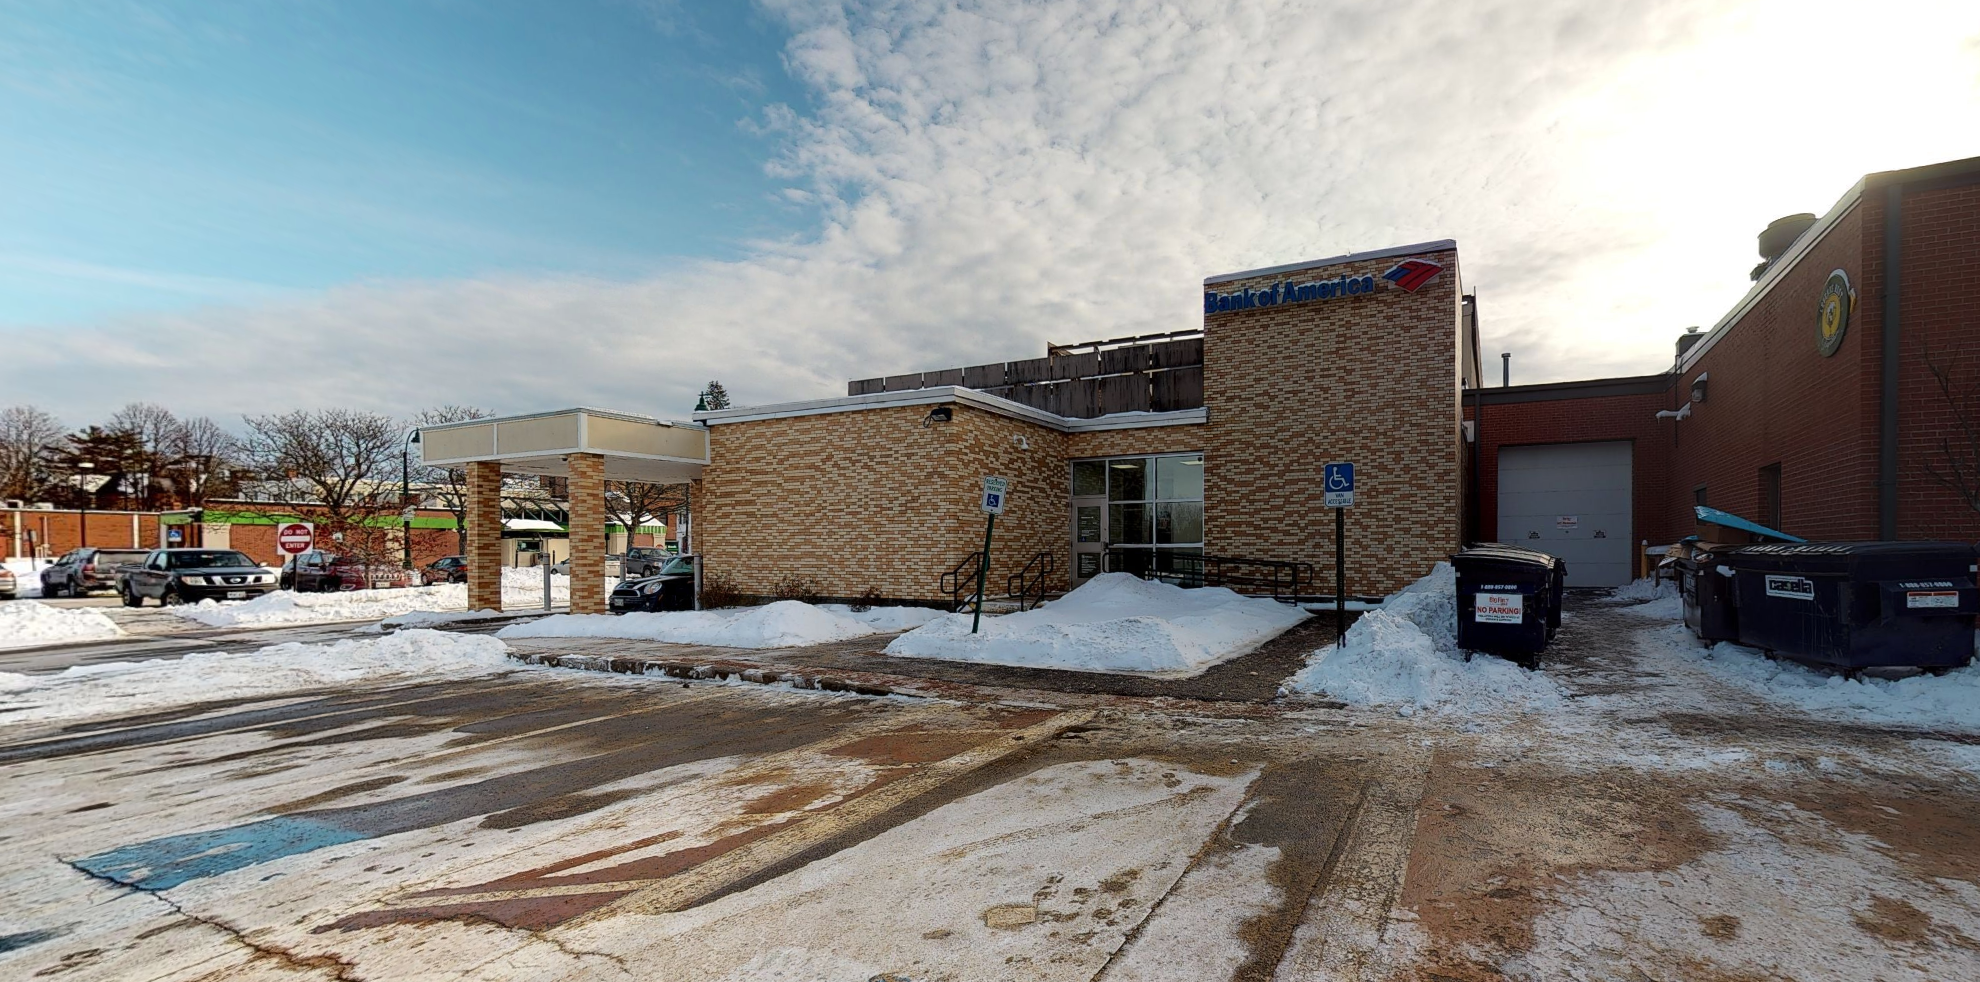 Bank of America financial center with drive-thru ATM | 849 Main St, Westbrook, ME 04092